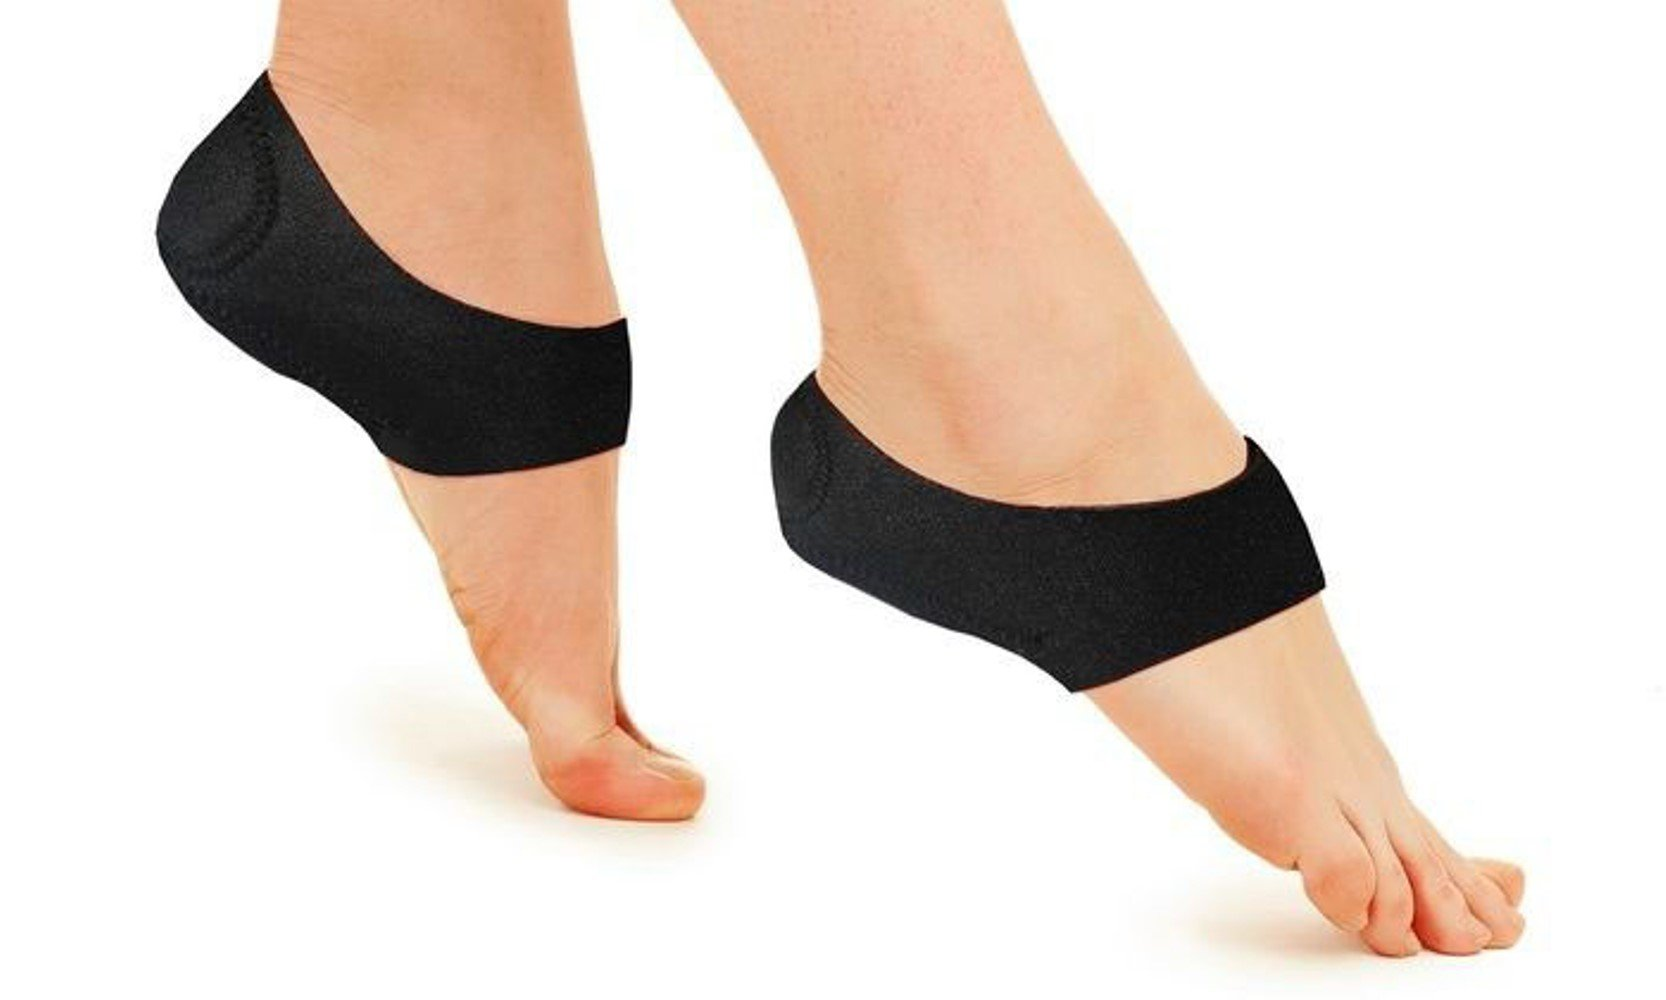 Plantar Fasciitis Arch Support - Alleviate Plantar Fasciitis and Heel Pain, Plantar Fasciitis Therapy Wrap by Alayna (TM) (Image #1)